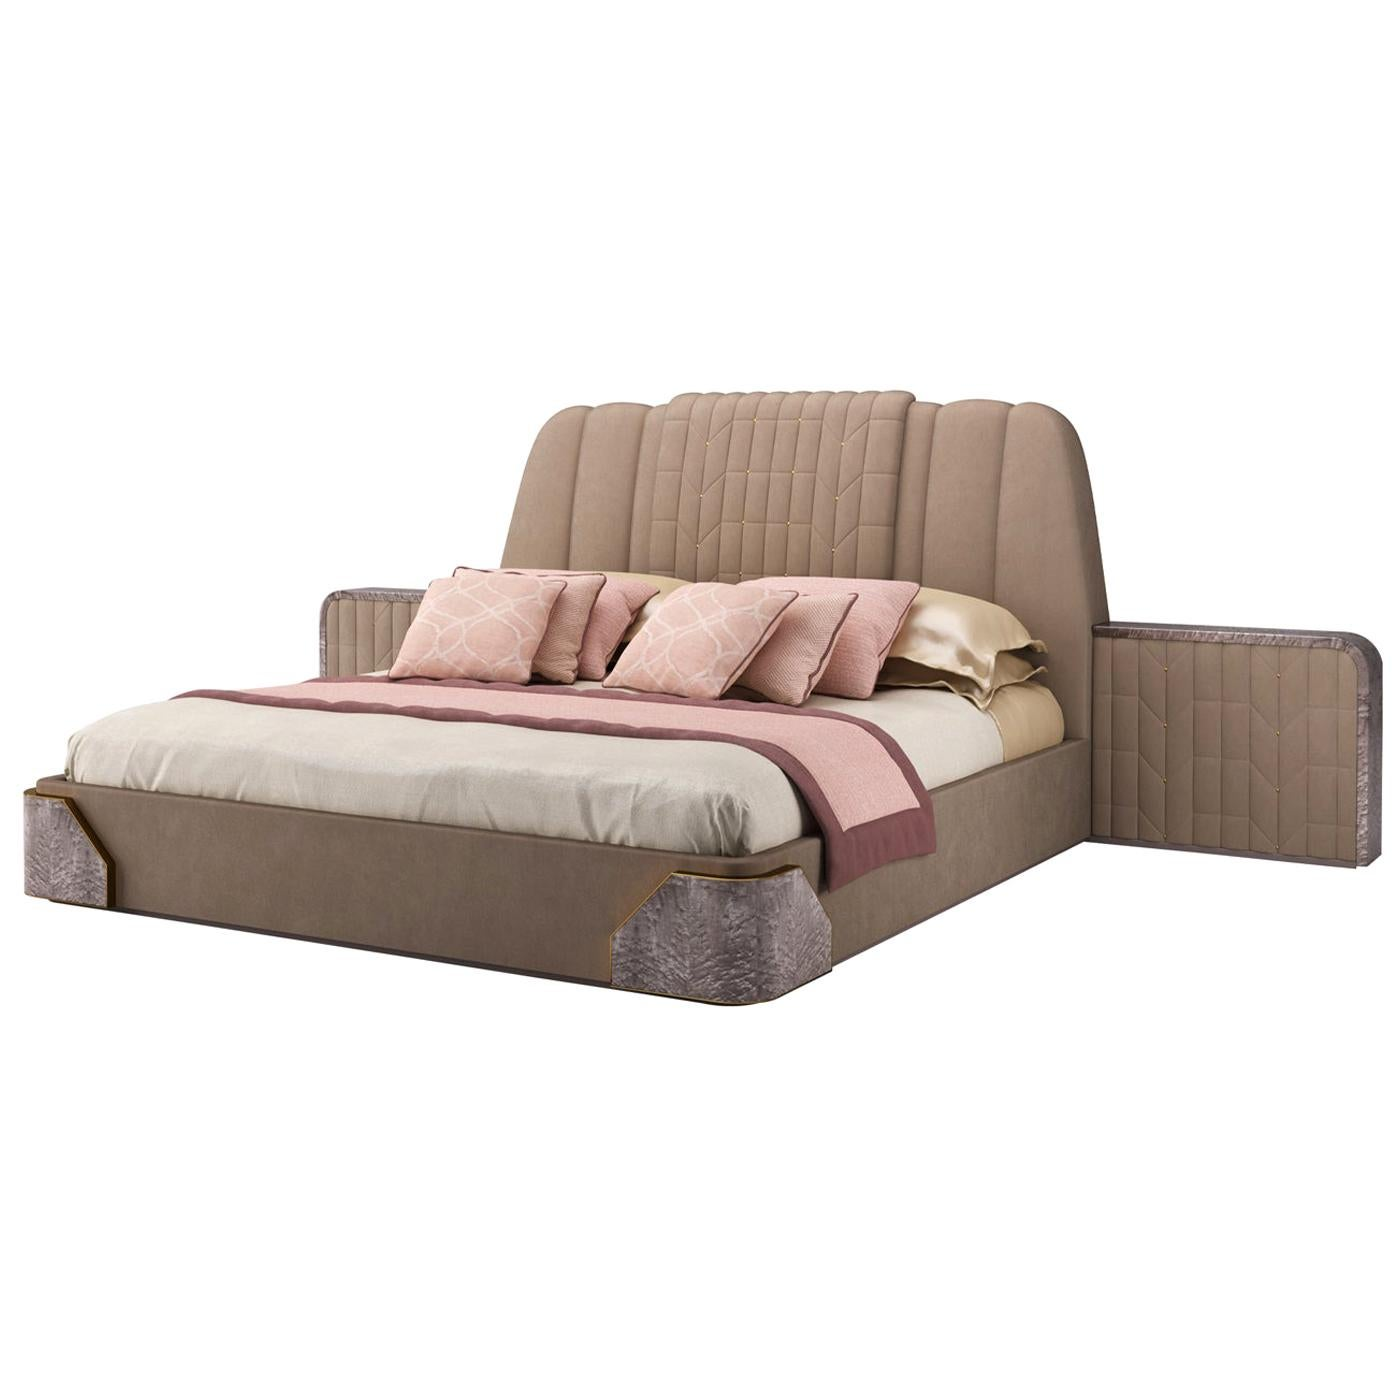 Coleman Upholstered Double Bed